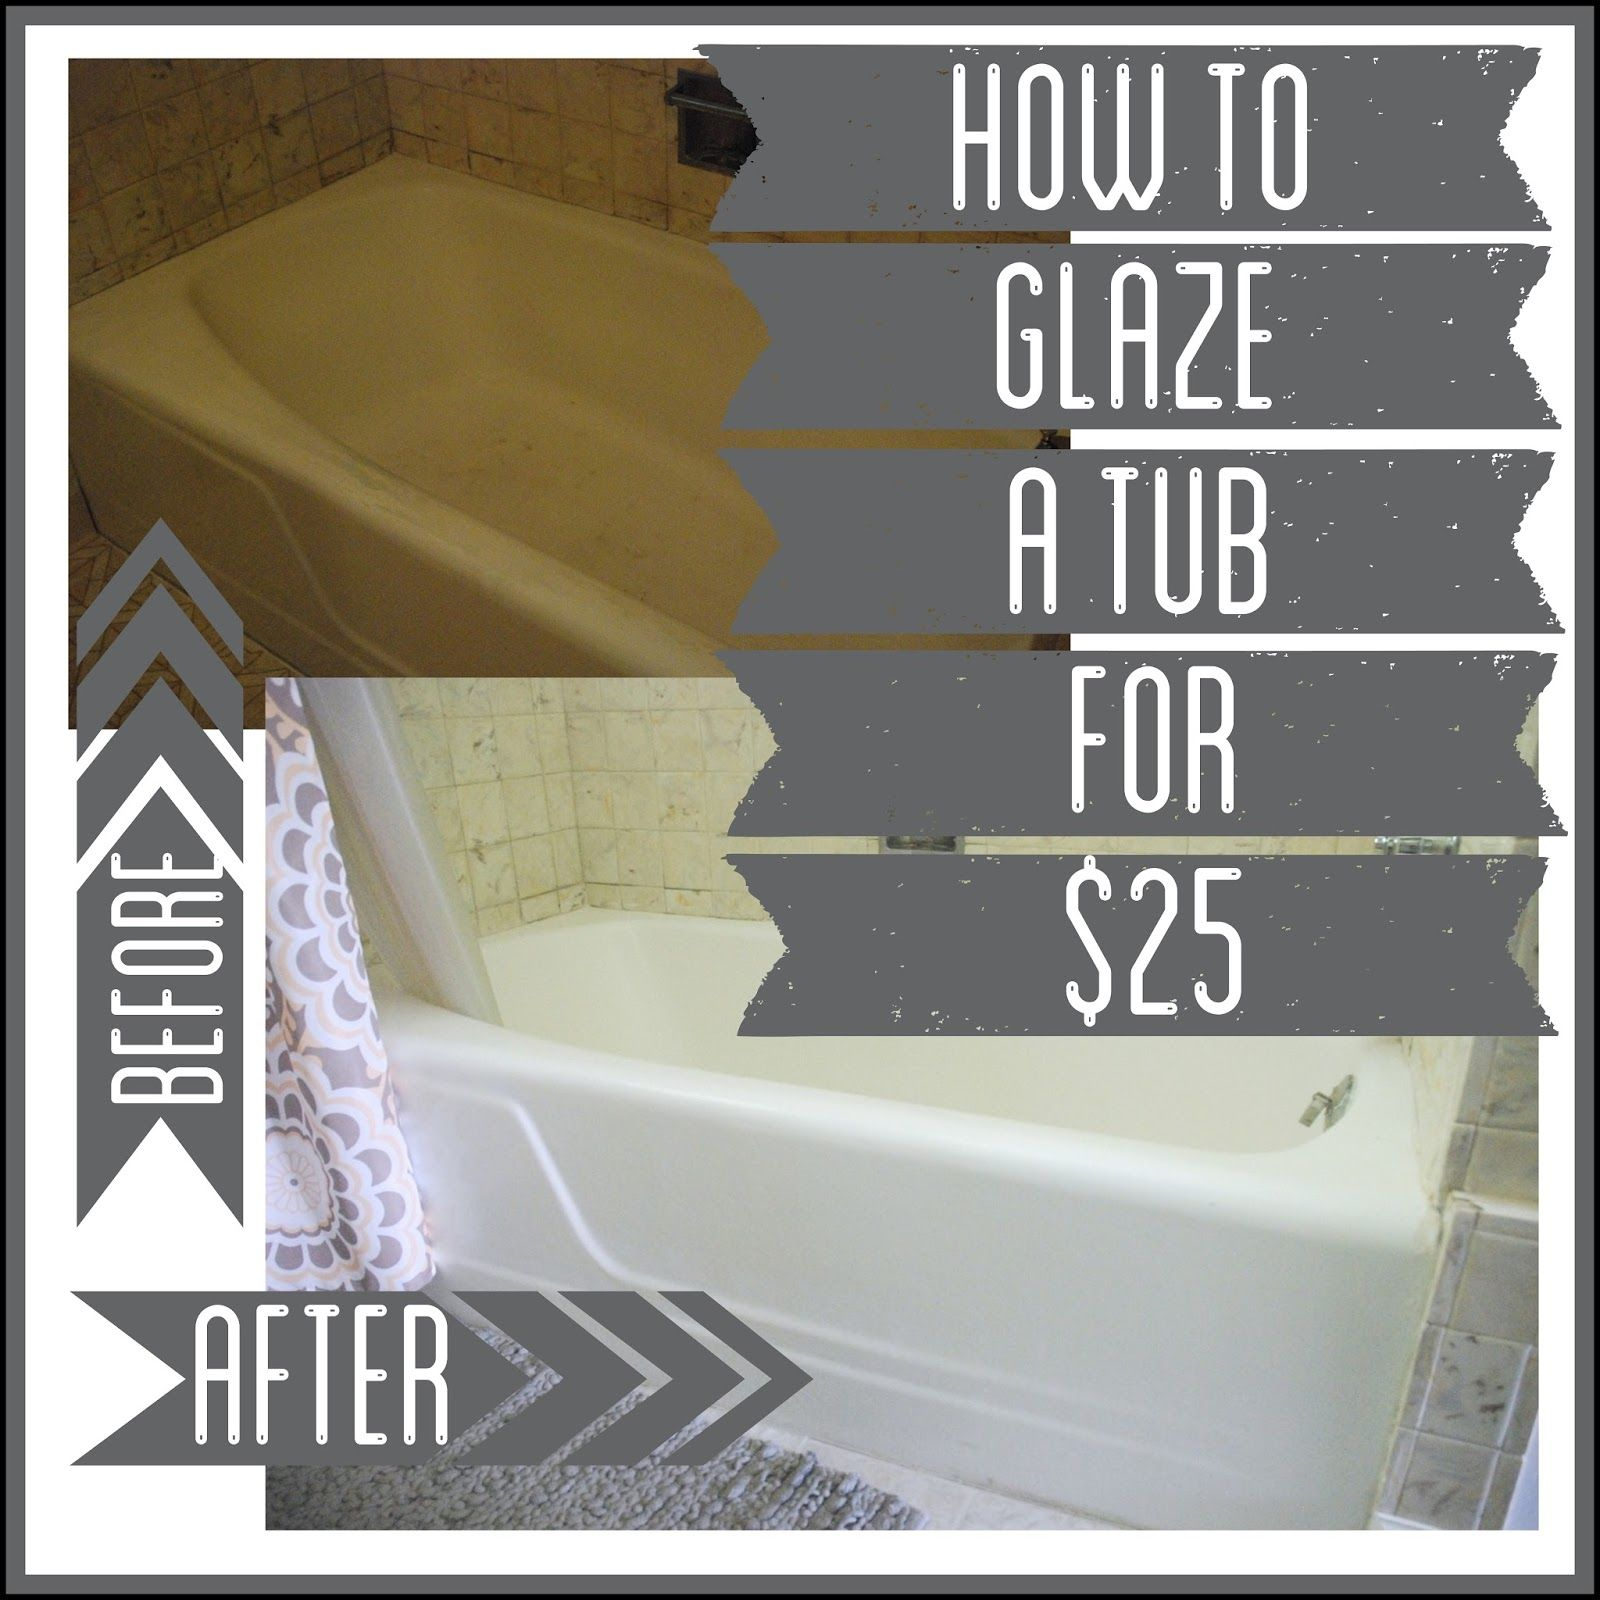 Fine Paint For A Bathtub Tiny Bathtub Refinishing Service Flat Companies That Refinish Bathtubs Bathtub Repair Young Bathtub Resurfacing Cost RedTub Glaze How To Glaze A Tub   Urevoo